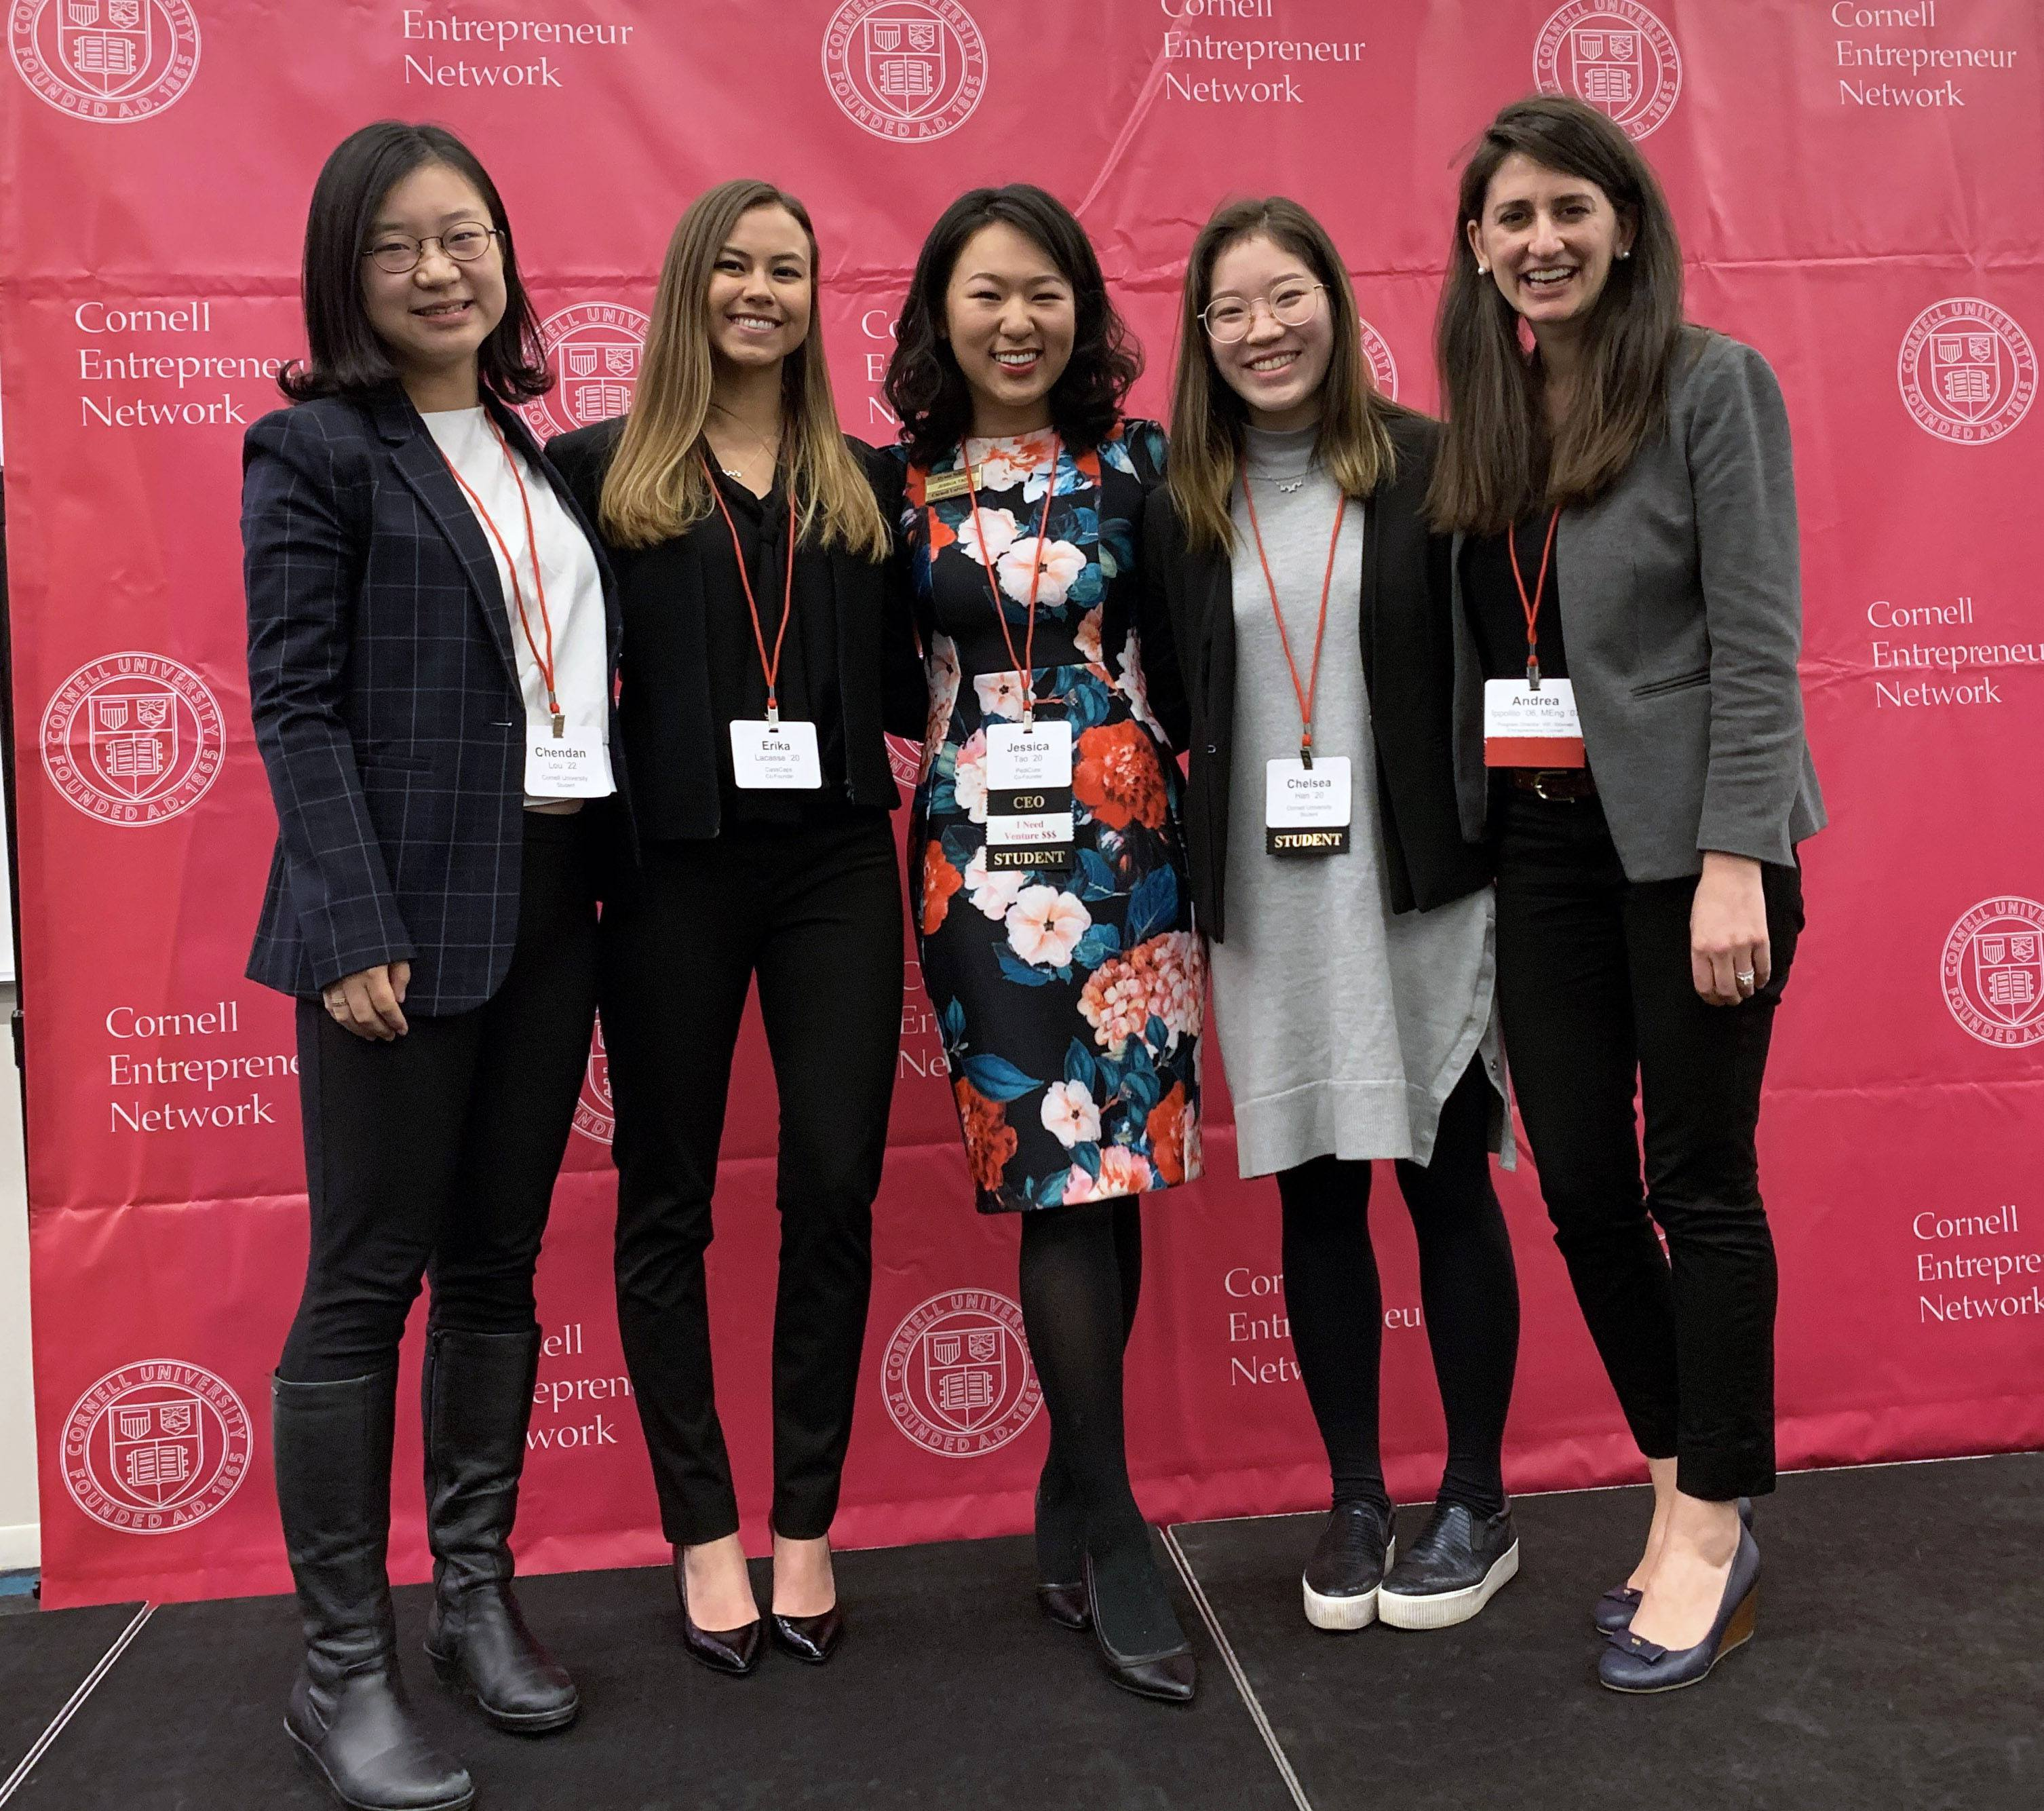 Andrea Ippolito (far right) with members of the W.E. (Women Entrepreneurs) Cornell cohort. Chendan Luo '22 (far left), a sophomore in the College of Engineering, was the youngest Cornell student at the conference. Luo is currently researching a venture that would produce make-up for clients of all genders.